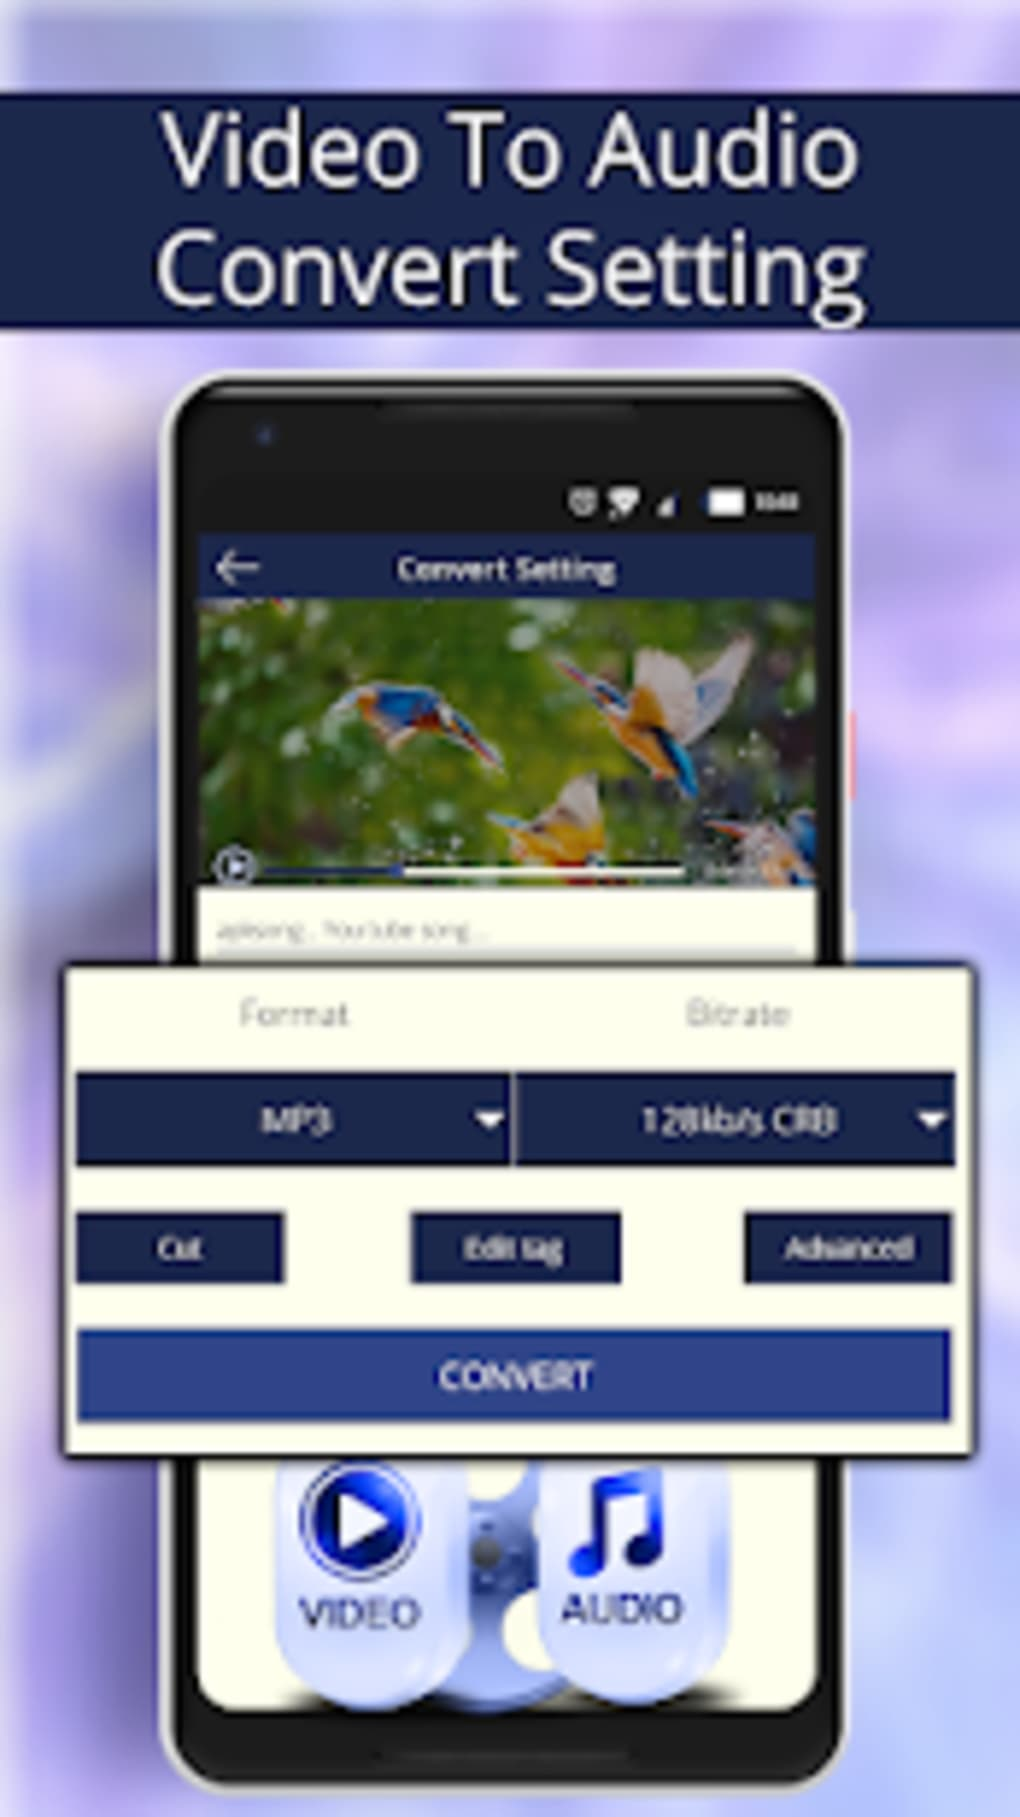 Free Video Converter: Media Converter Mp4 to Mp3 for Android